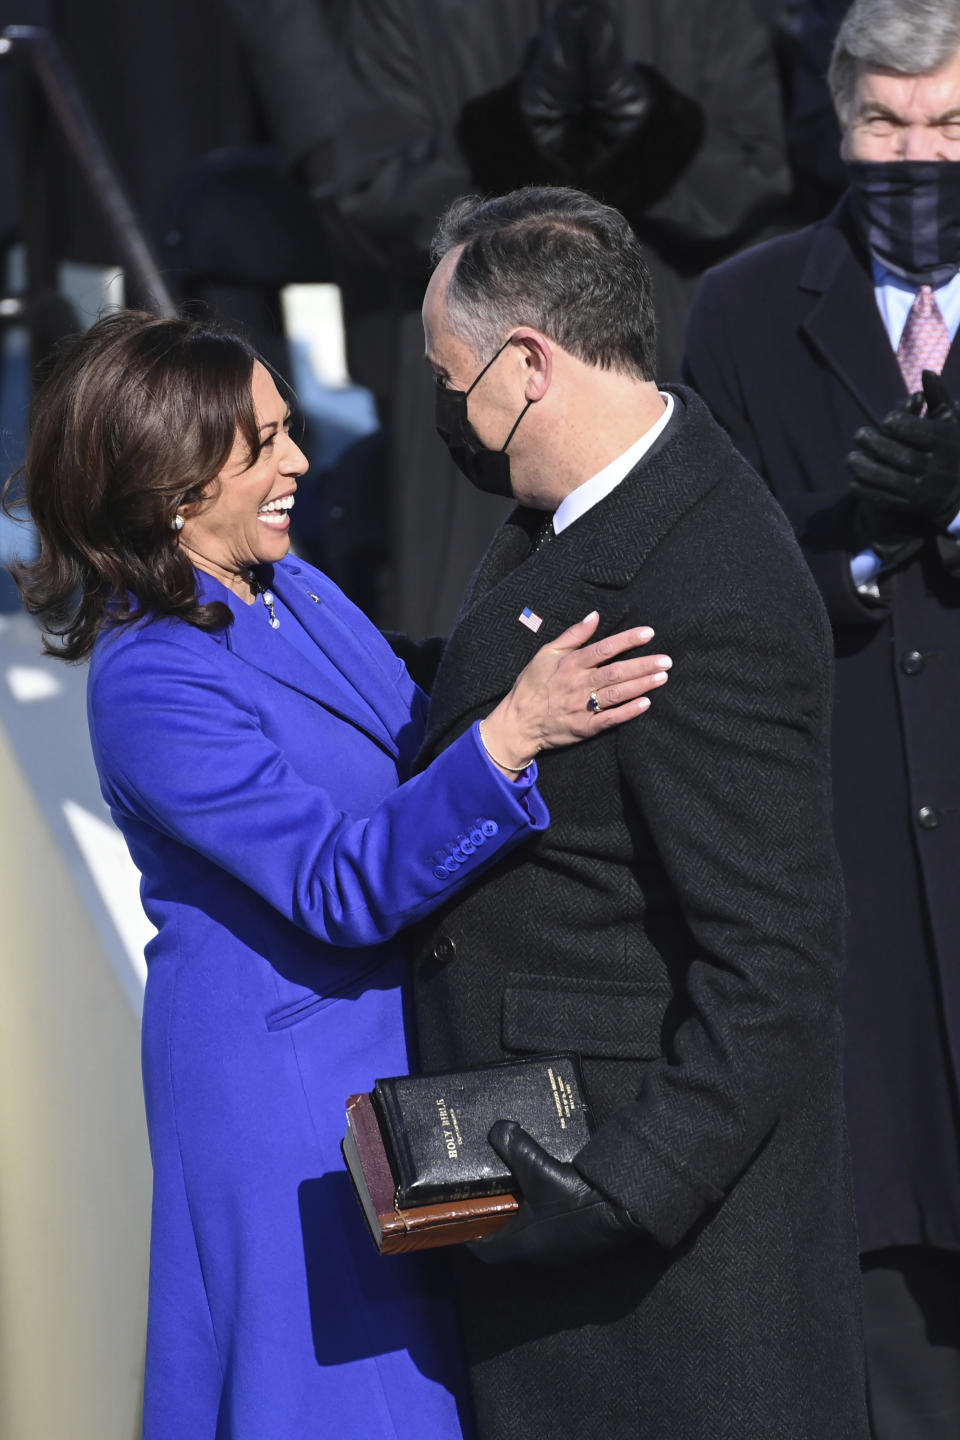 Vice President Kamala Harris is embraced by her husband Doug Emhoff after she was sworn into office during the 59th Presidential Inauguration at the U.S. Capitol in Washington, Wednesday, Jan. 20, 2021.(Saul Loeb/Pool Photo via AP)